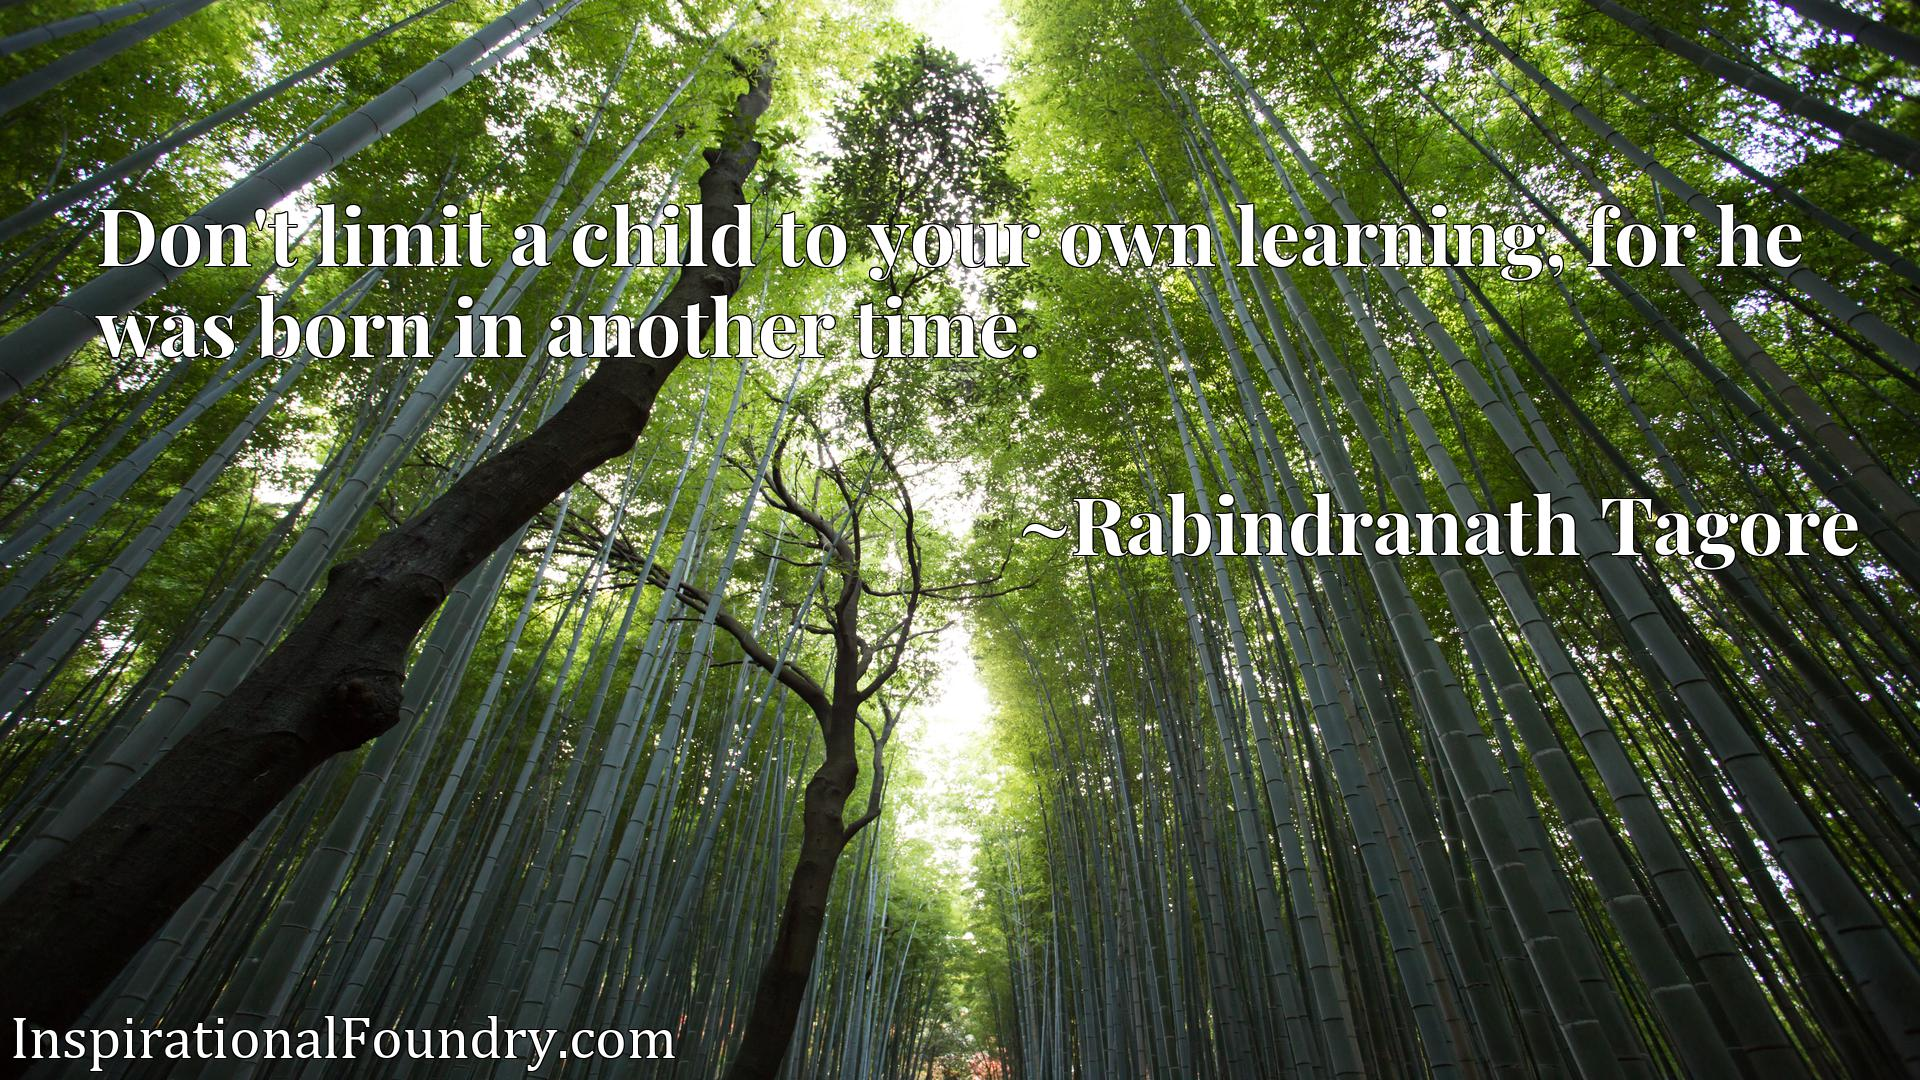 Don't limit a child to your own learning, for he was born in another time.